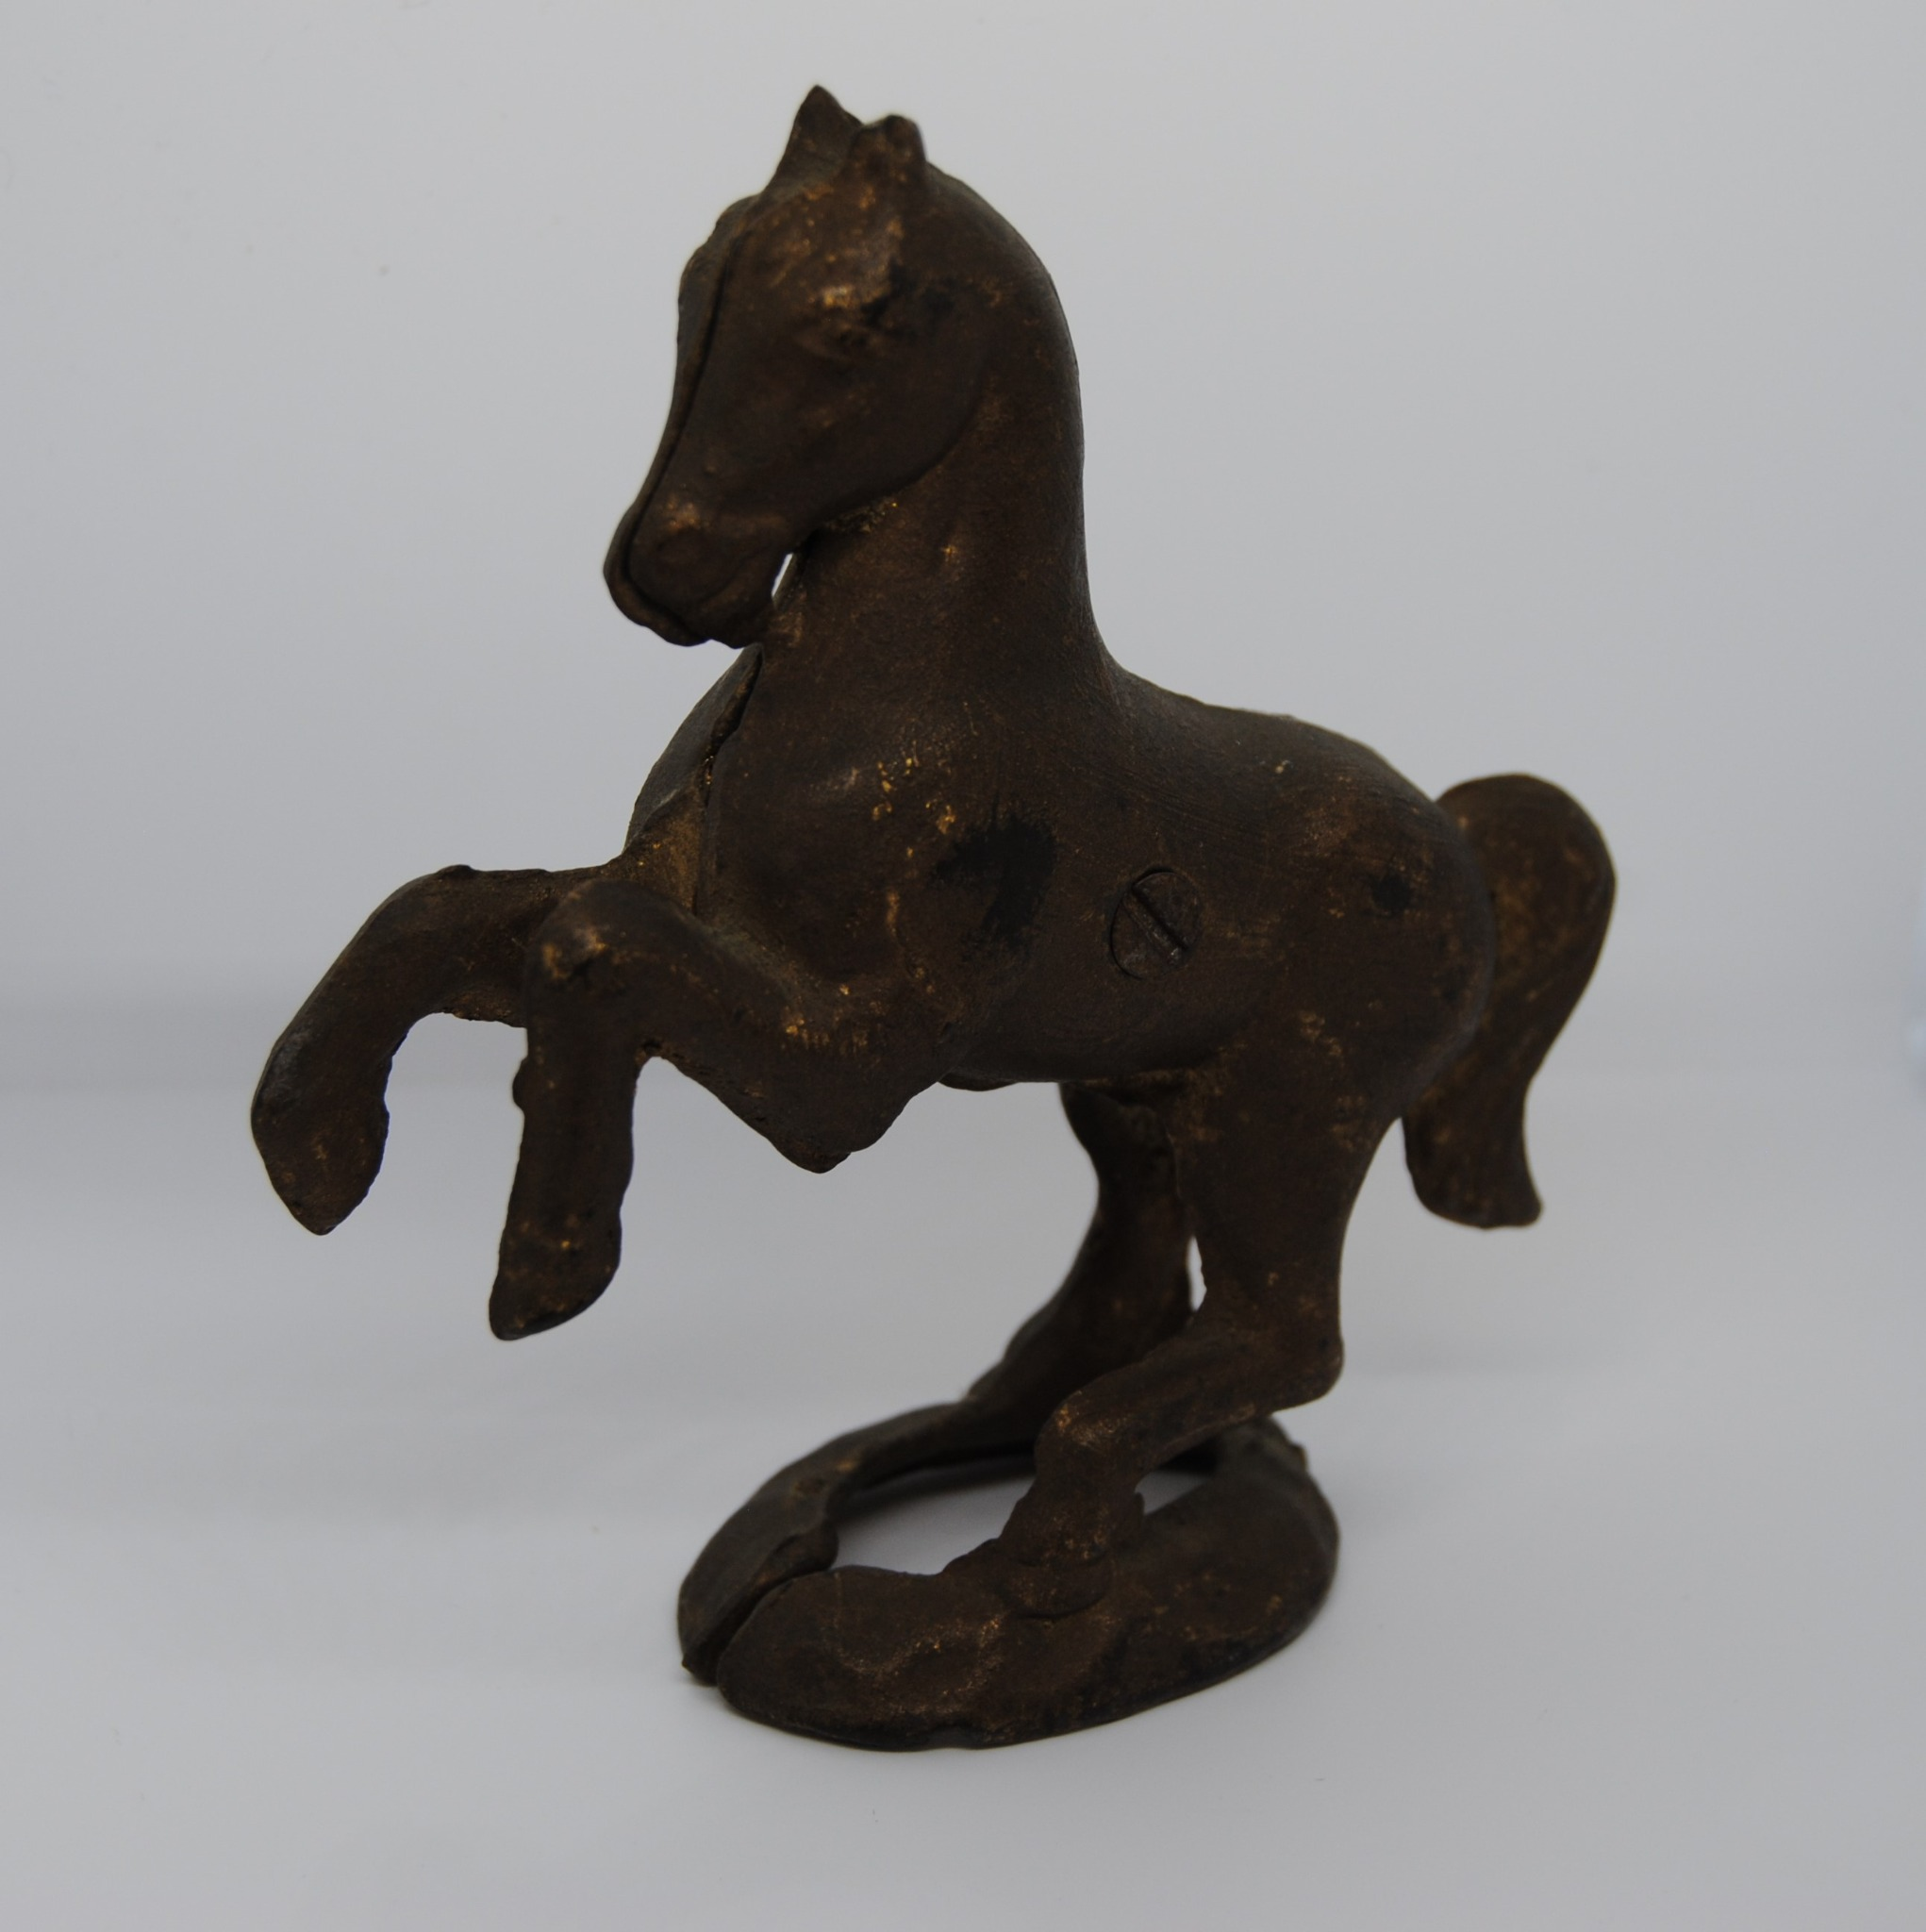 Antique Horse Cast Iron Bank with Gold Wash (E)